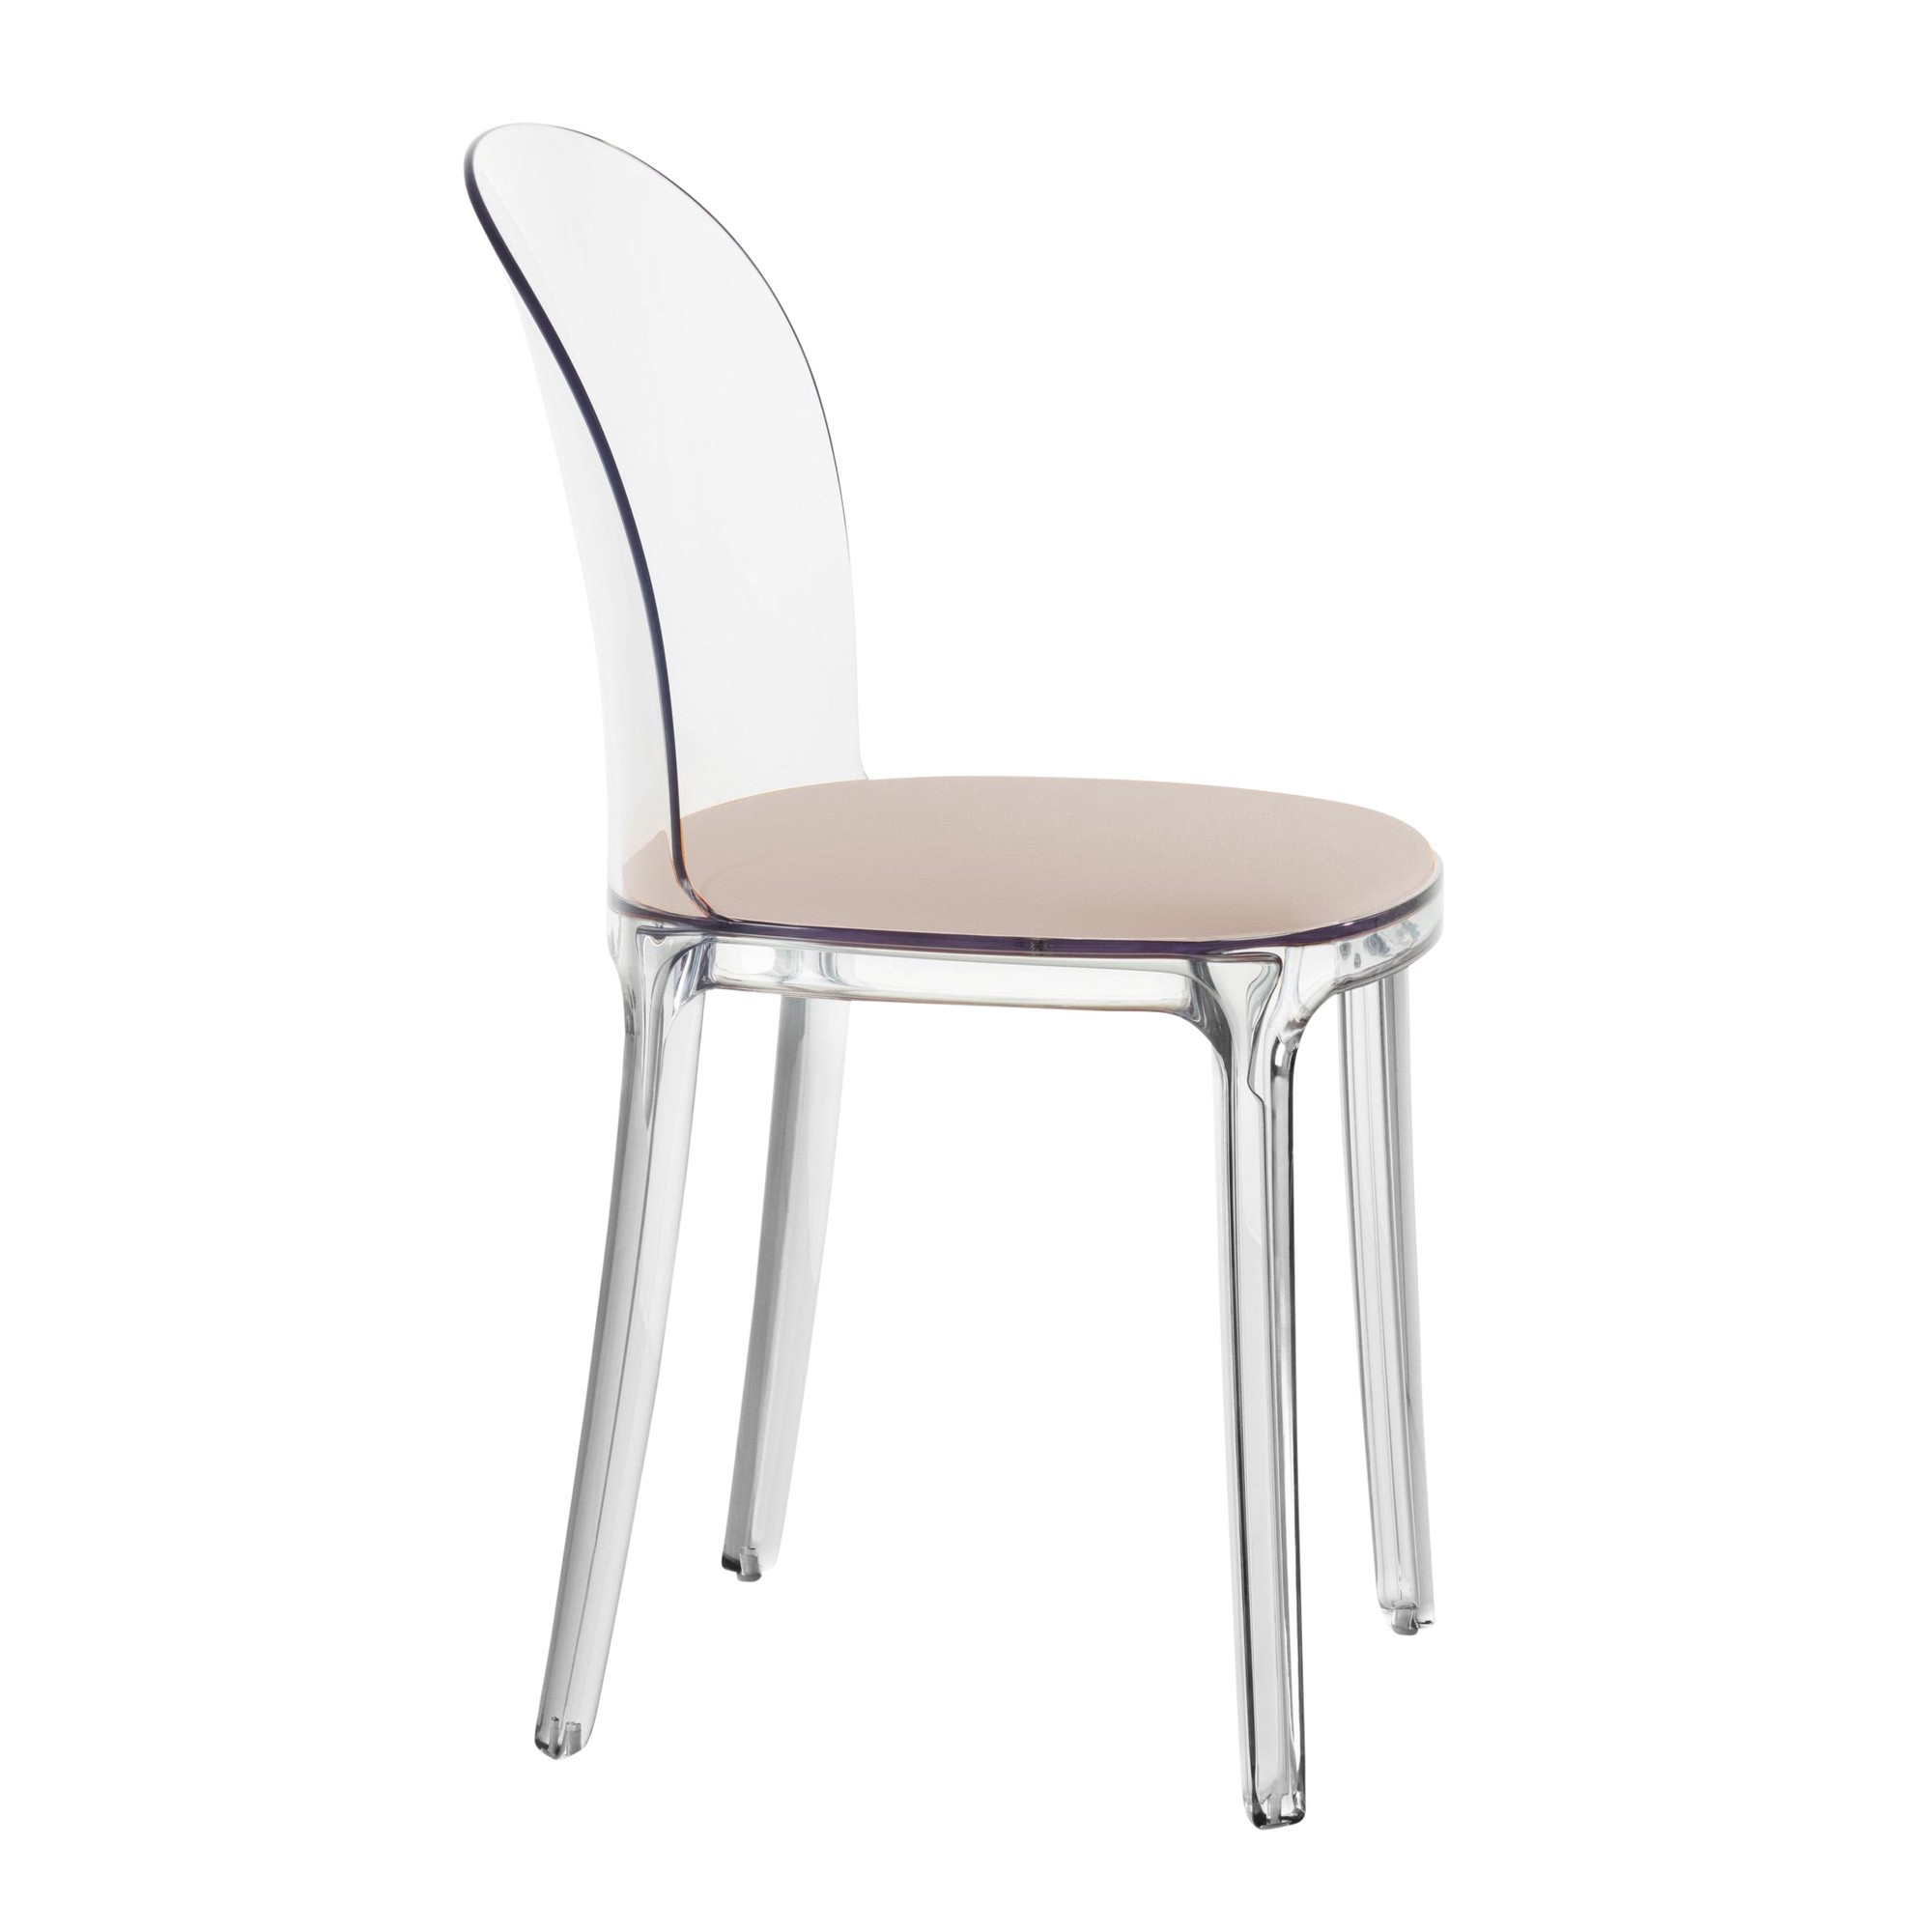 Chaise Polycarbonate Transparente Vanity Chair Chaise Transparente